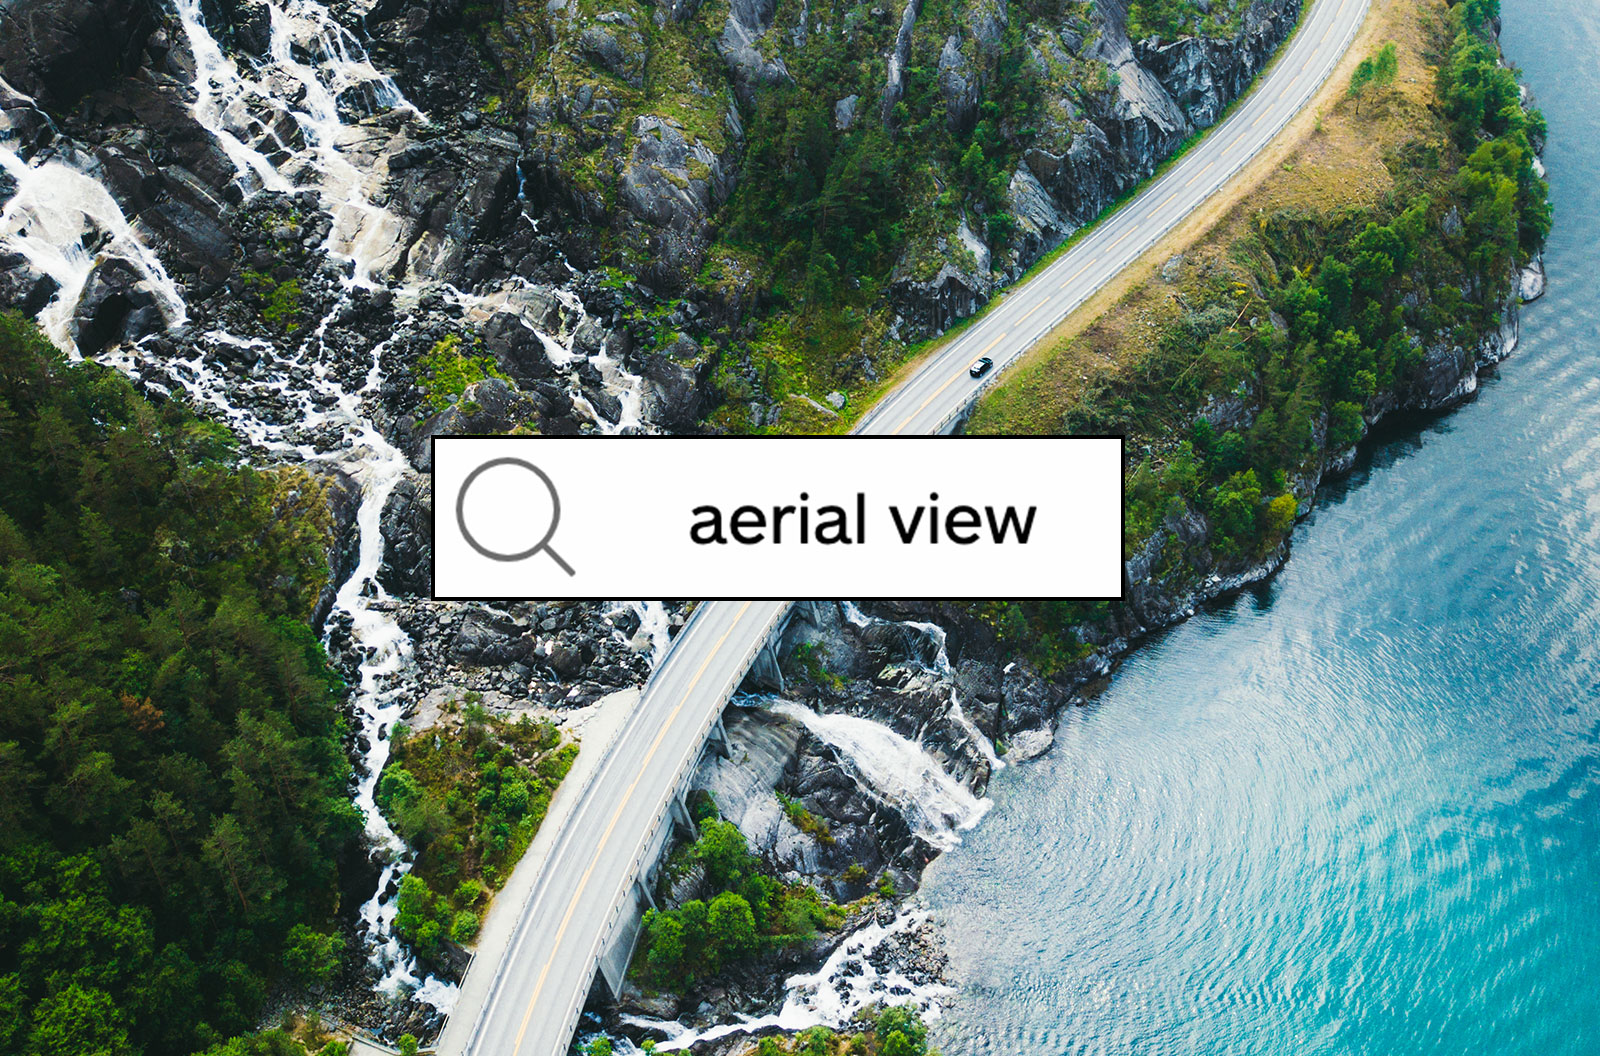 Aerial view of scenic mountain road with car, sea and waterfall in Norway